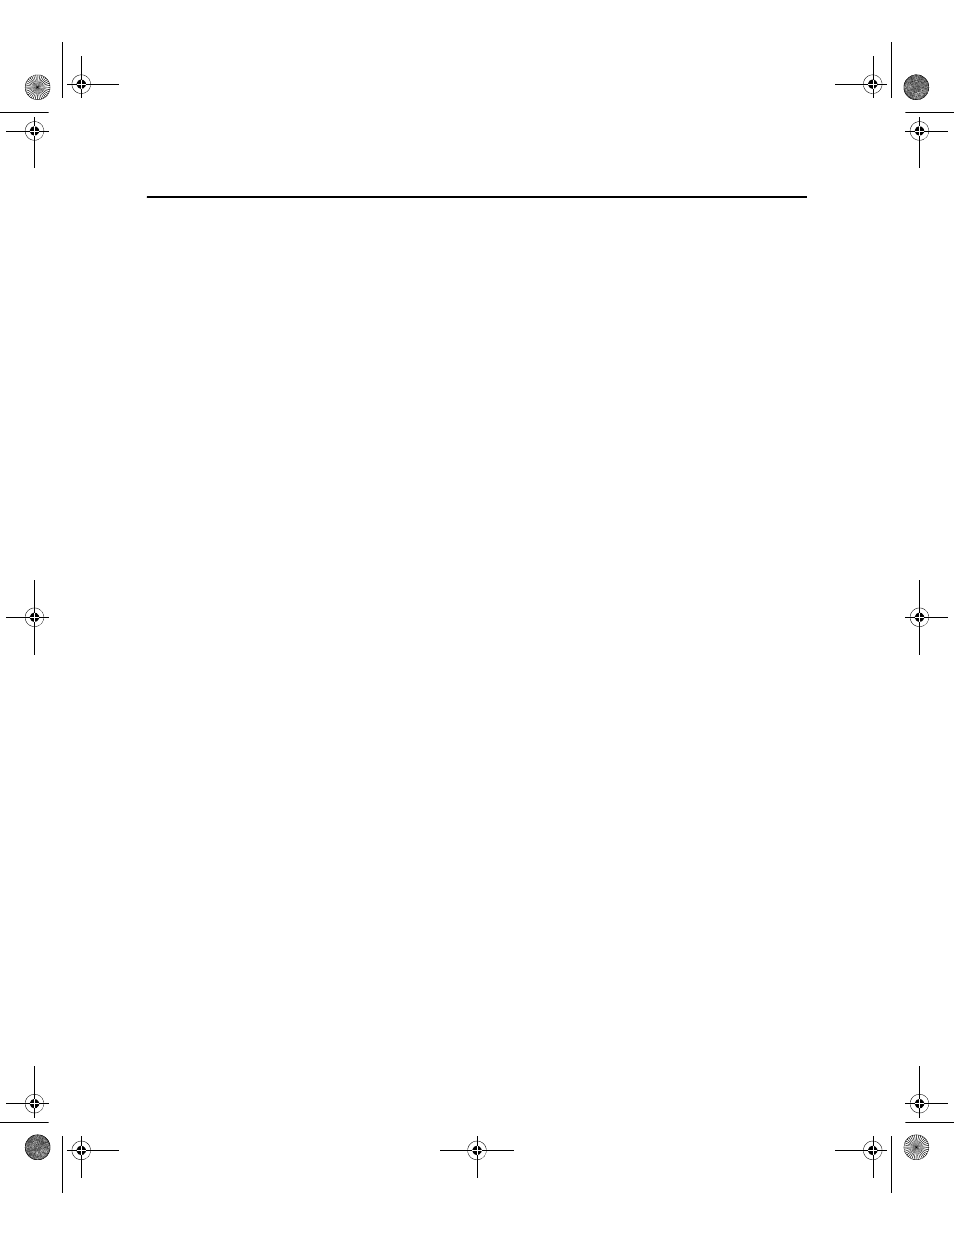 Factorytalk viewpoint site edition text fonts, Getting help